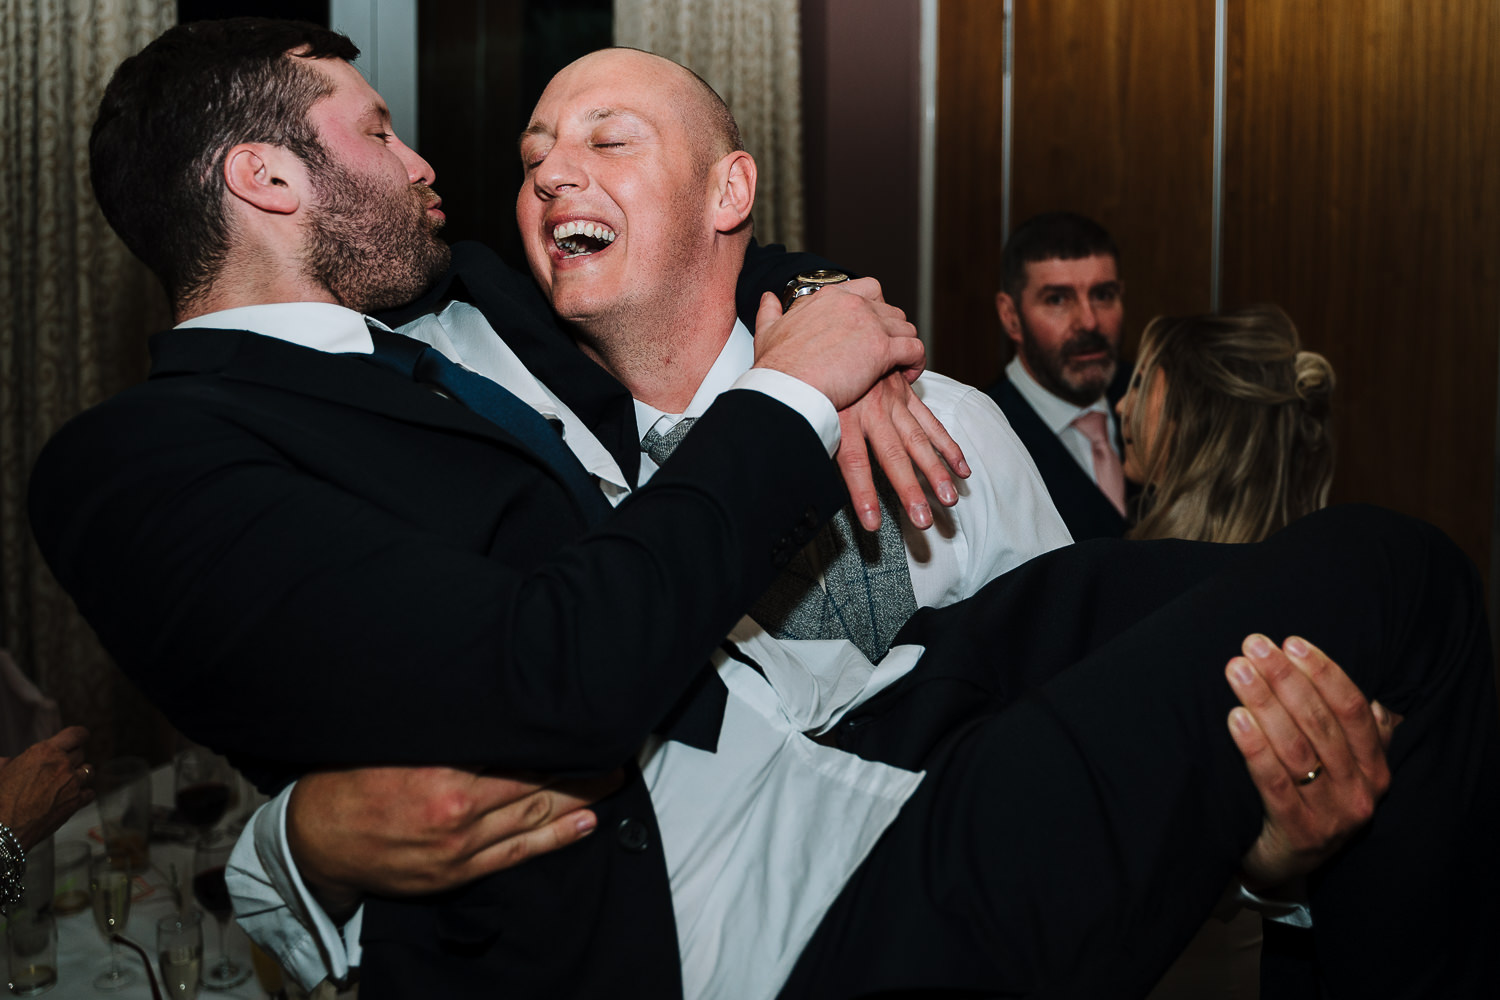 Groom carrying wedding guest